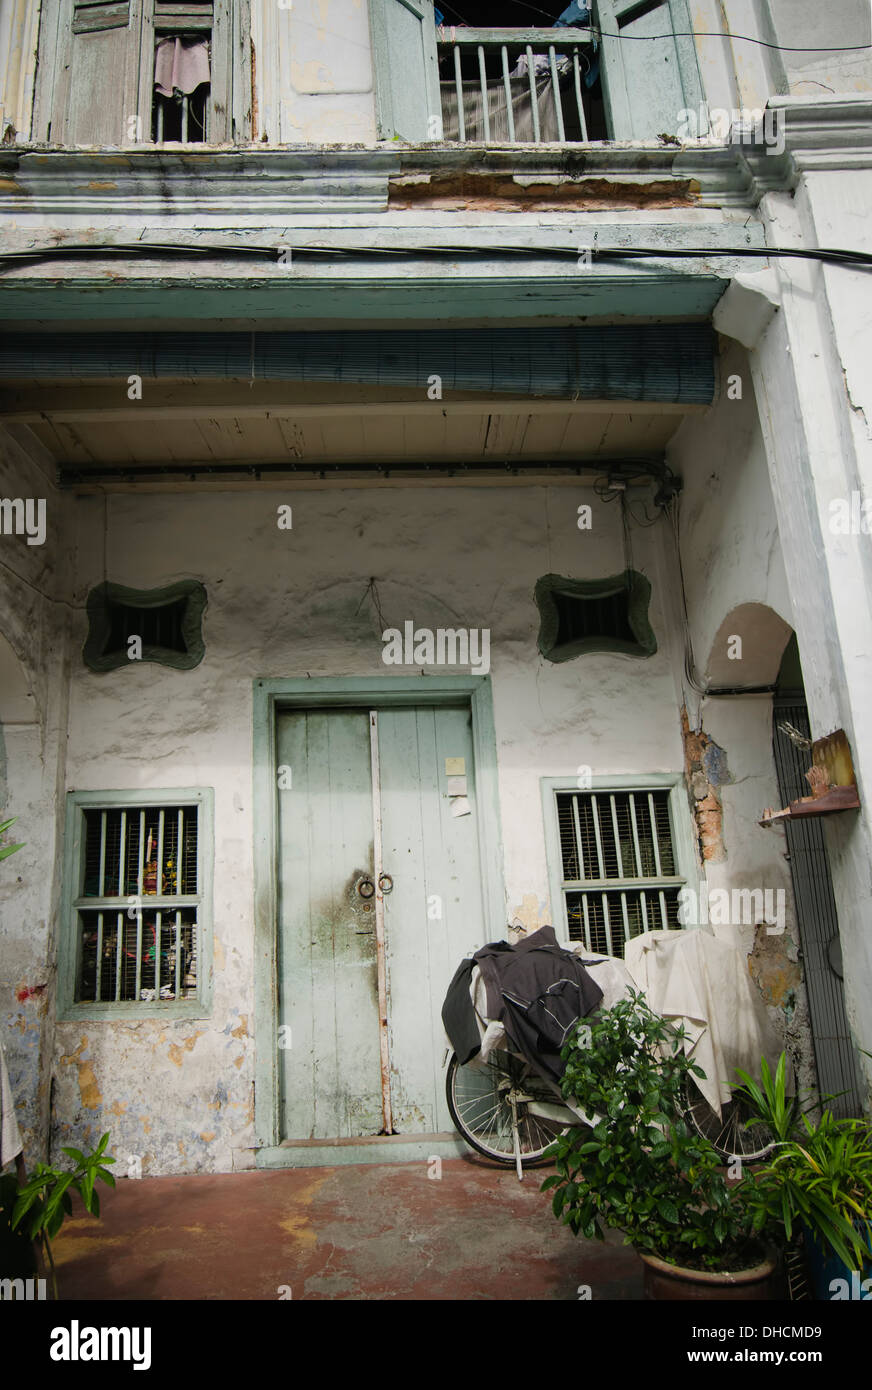 A pre-war  shophouse in Georgetown UNESCO World Heritage Site, Penang, Malaysia - Stock Image